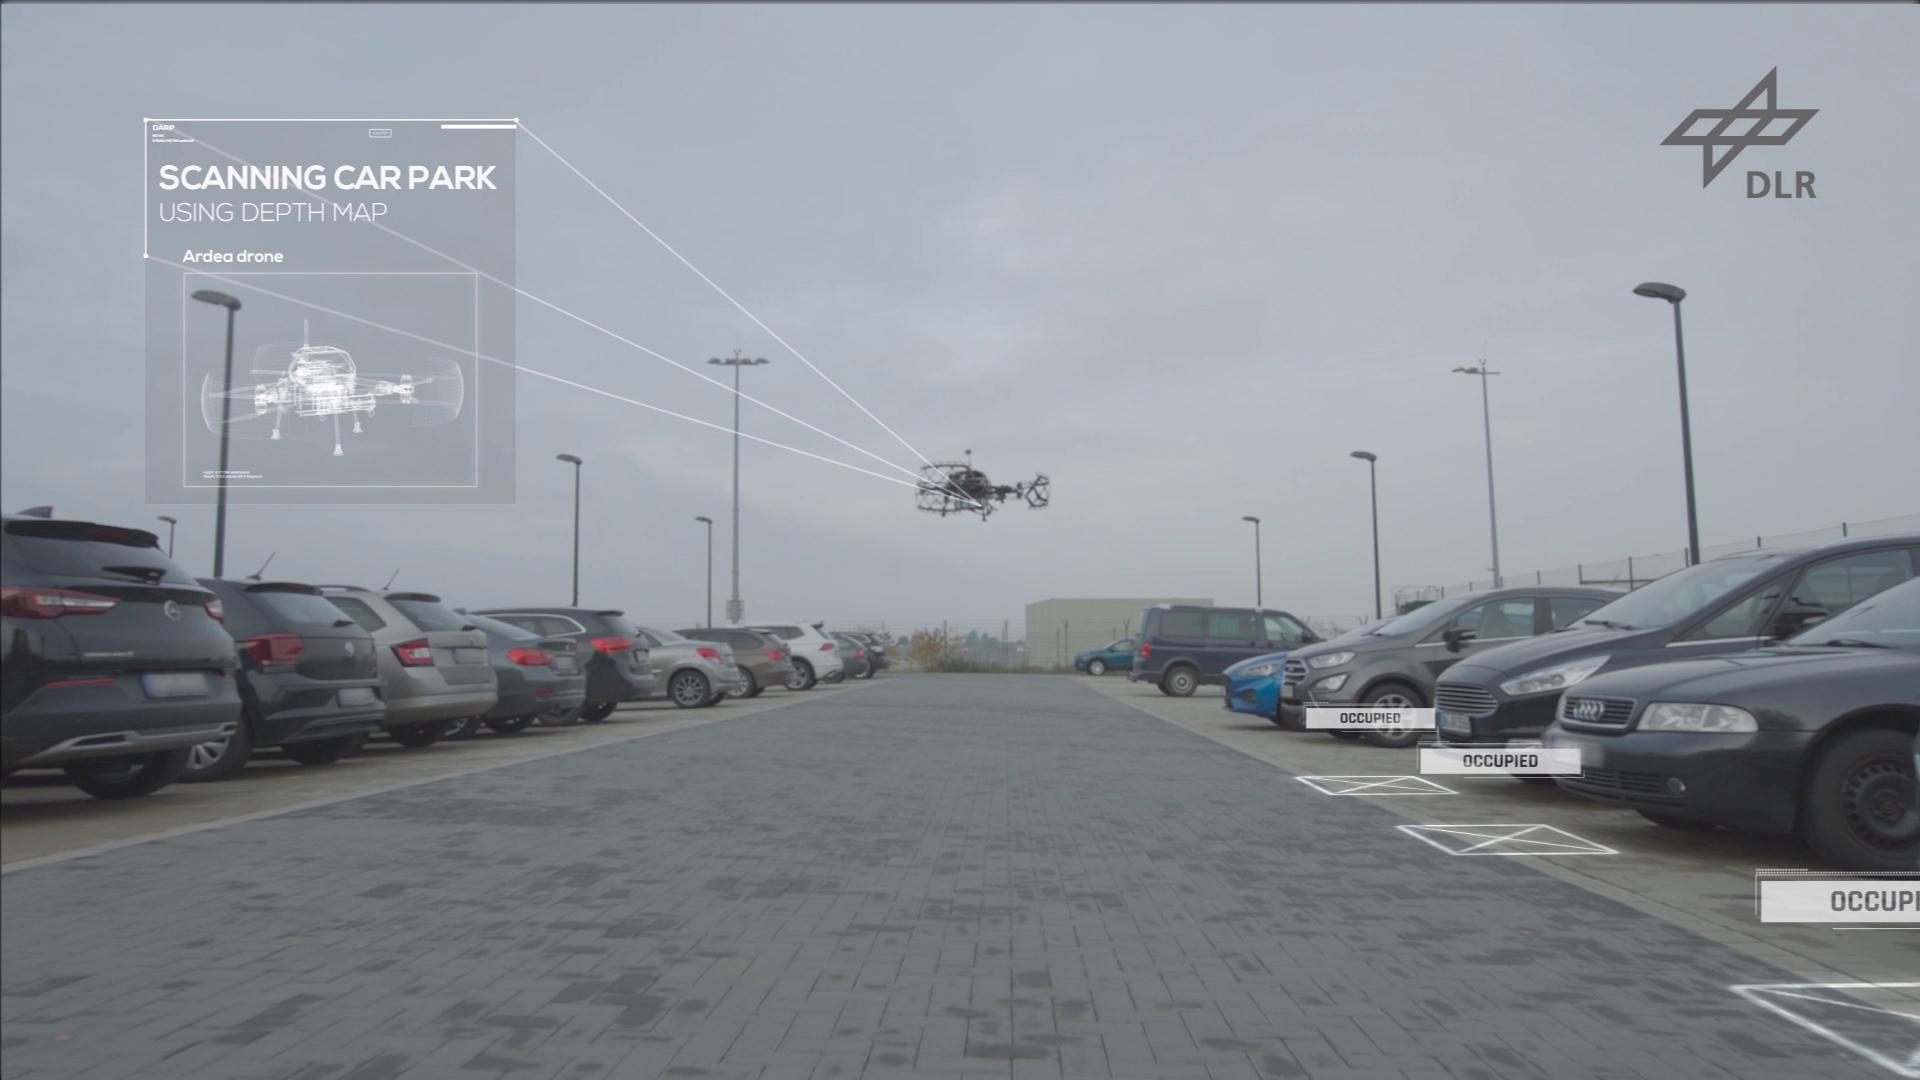 Parking space search by drone